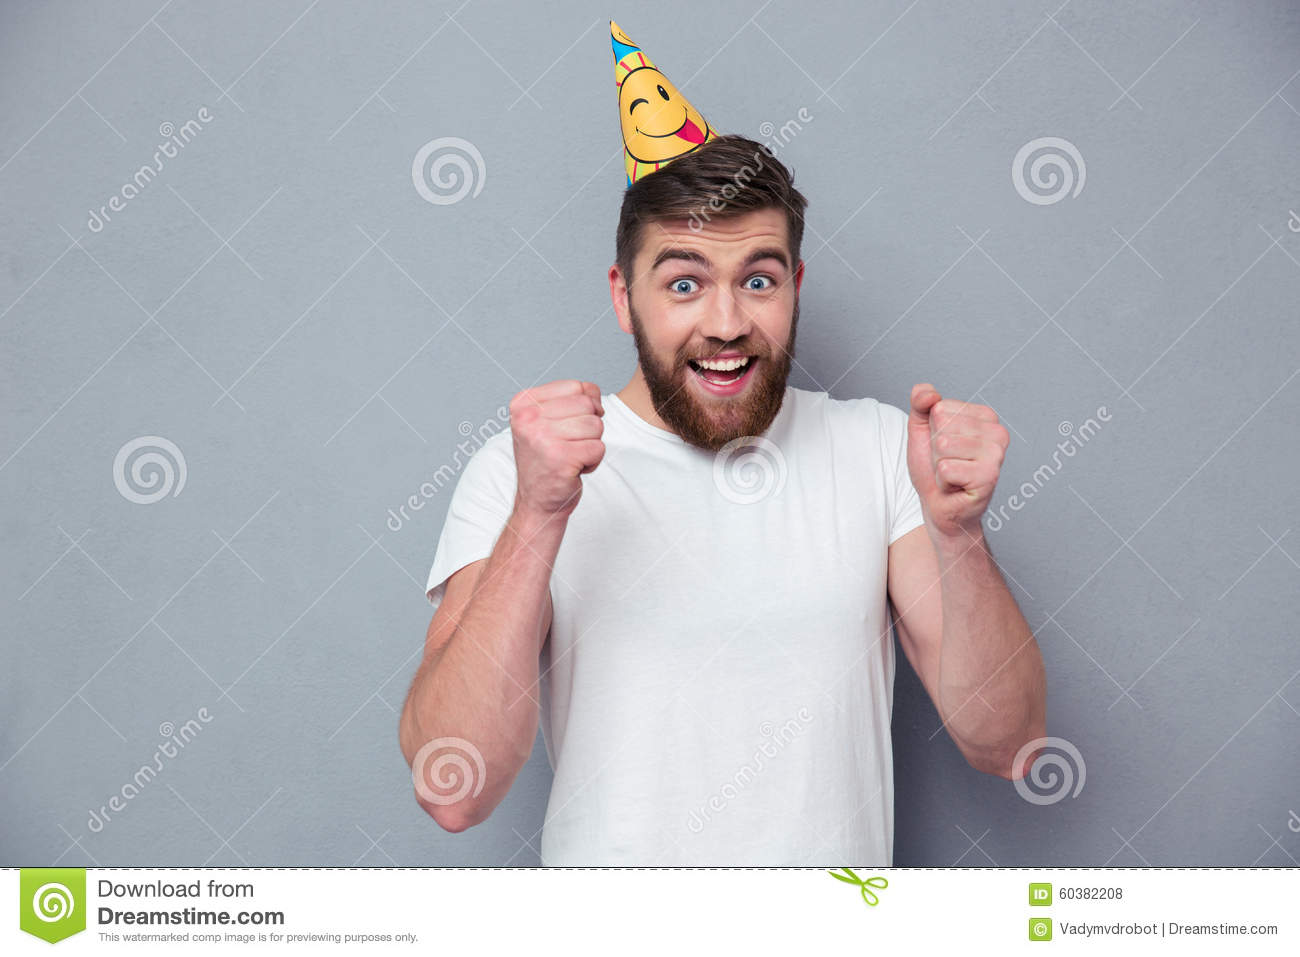 Portrait of a cheerful man with birthday hat